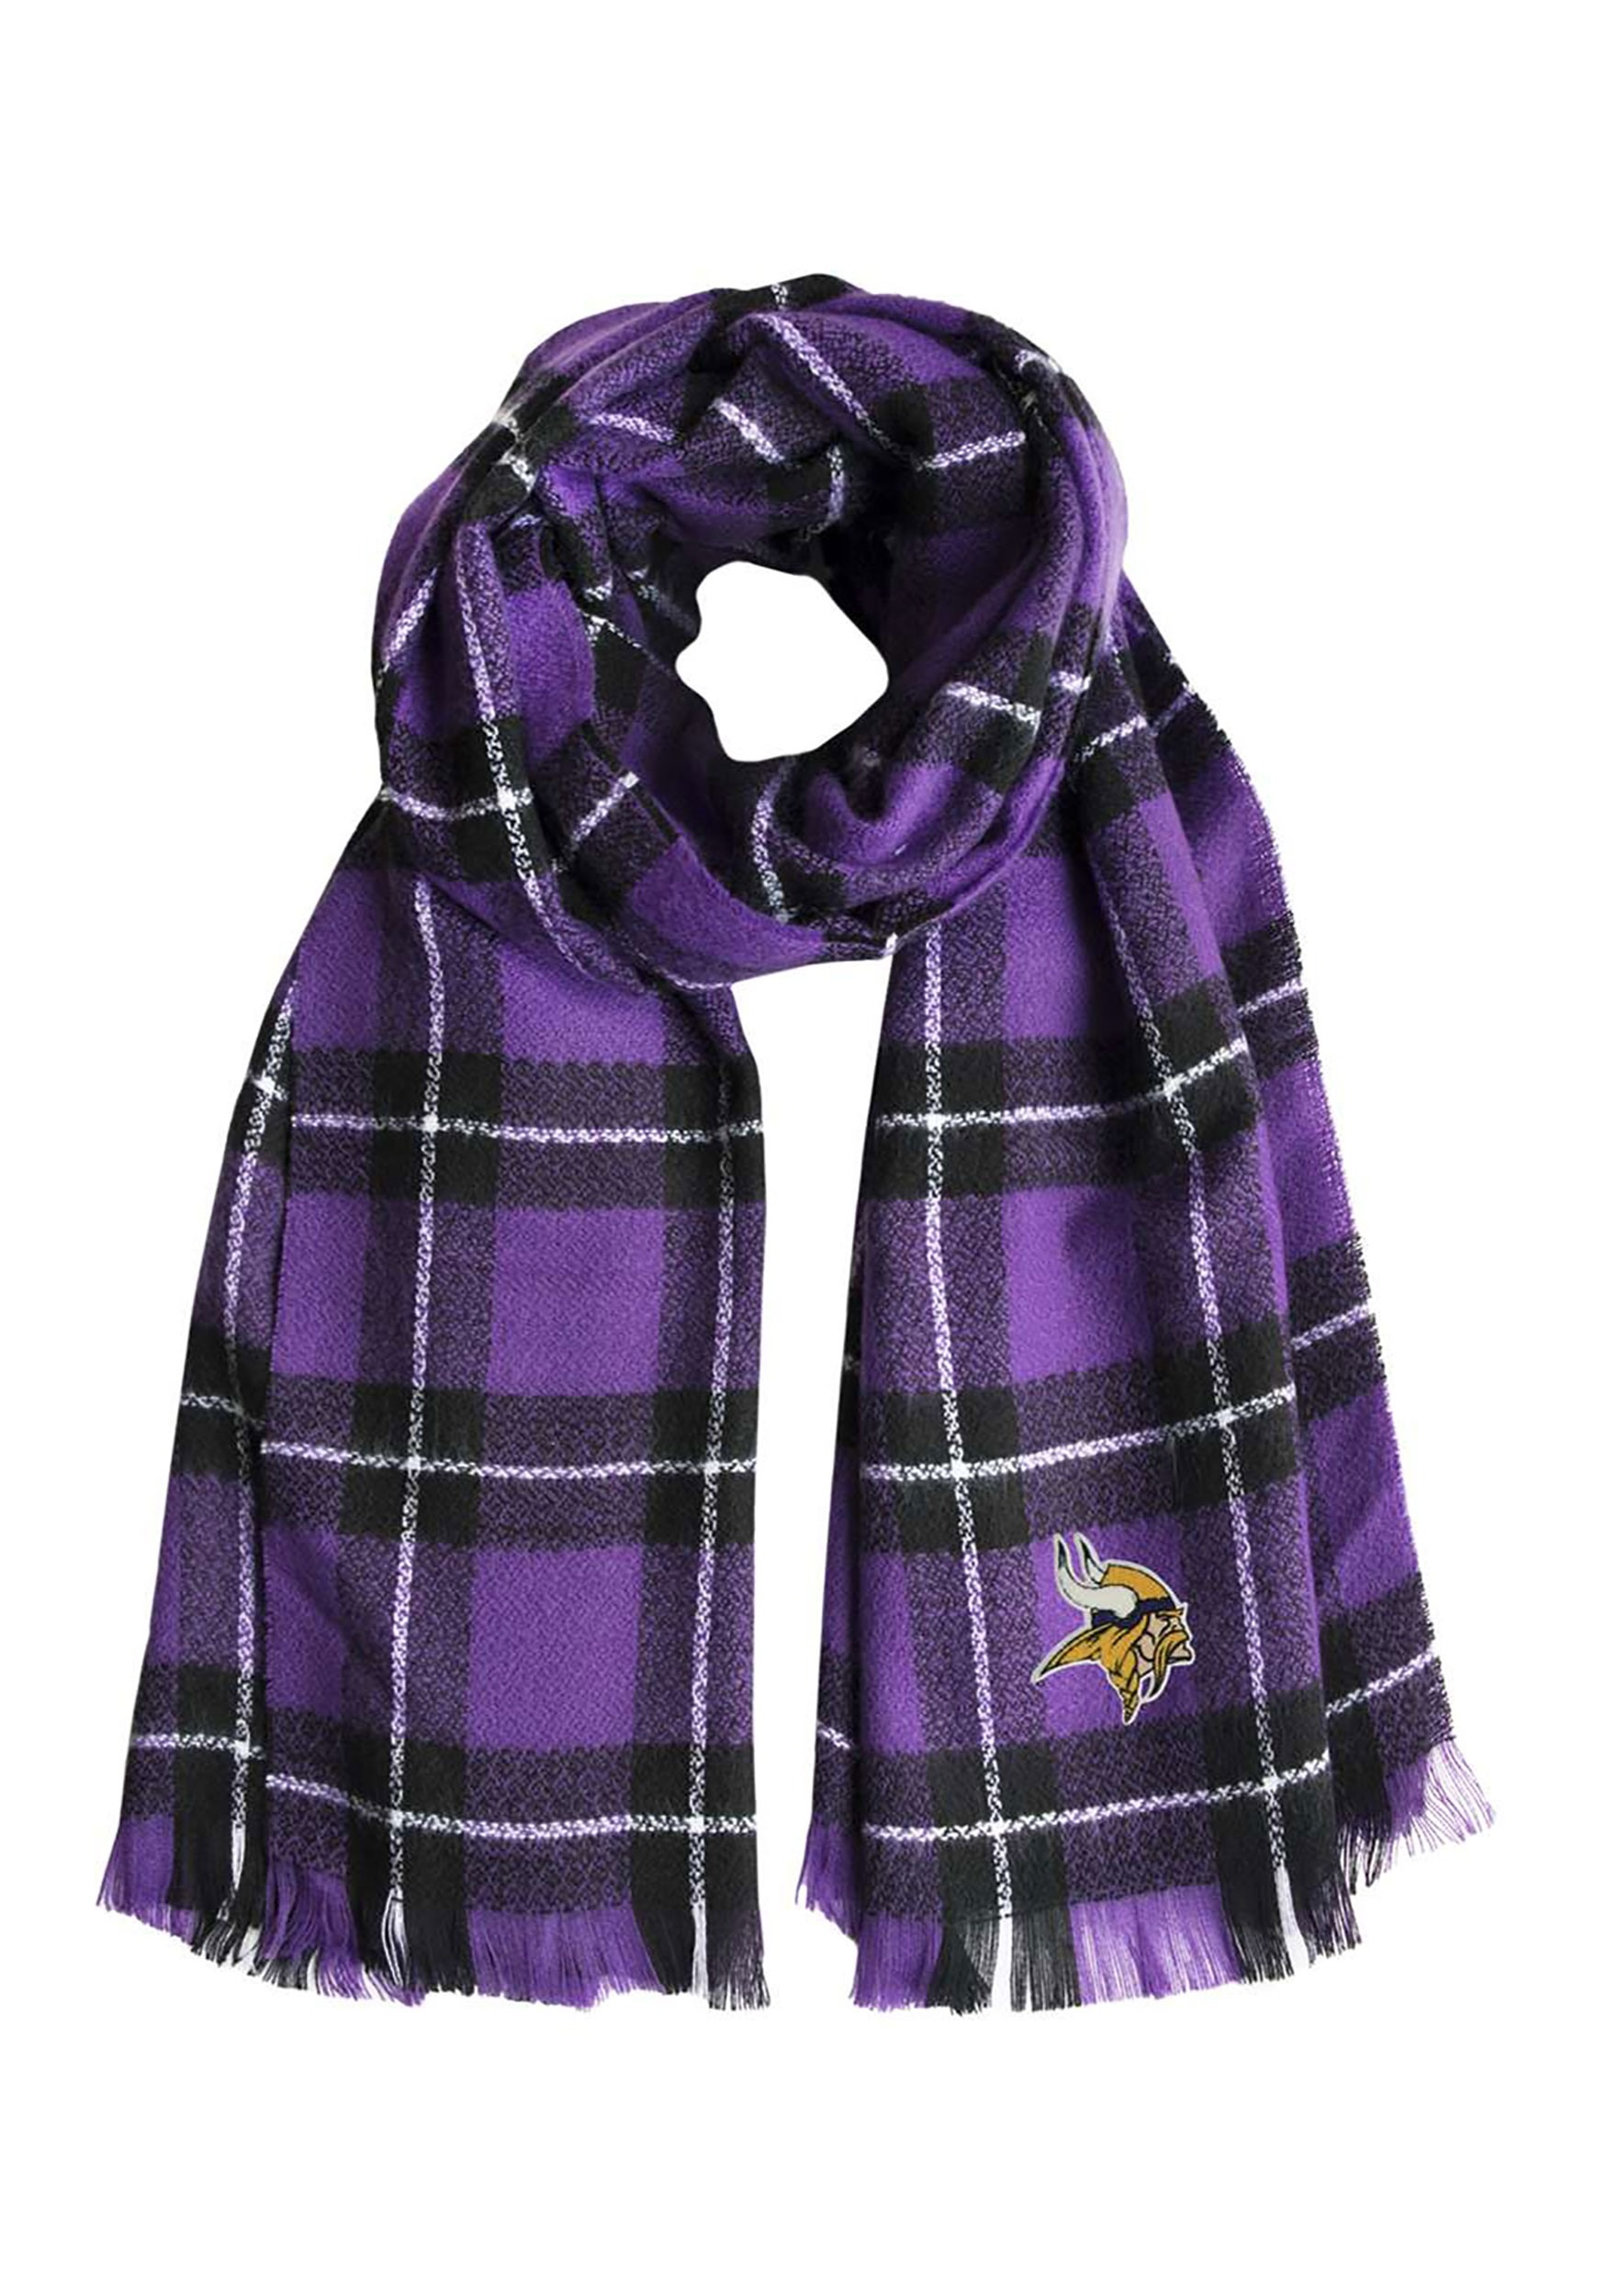 Minnesota Vikings NFL Plaid Blanket Scarf